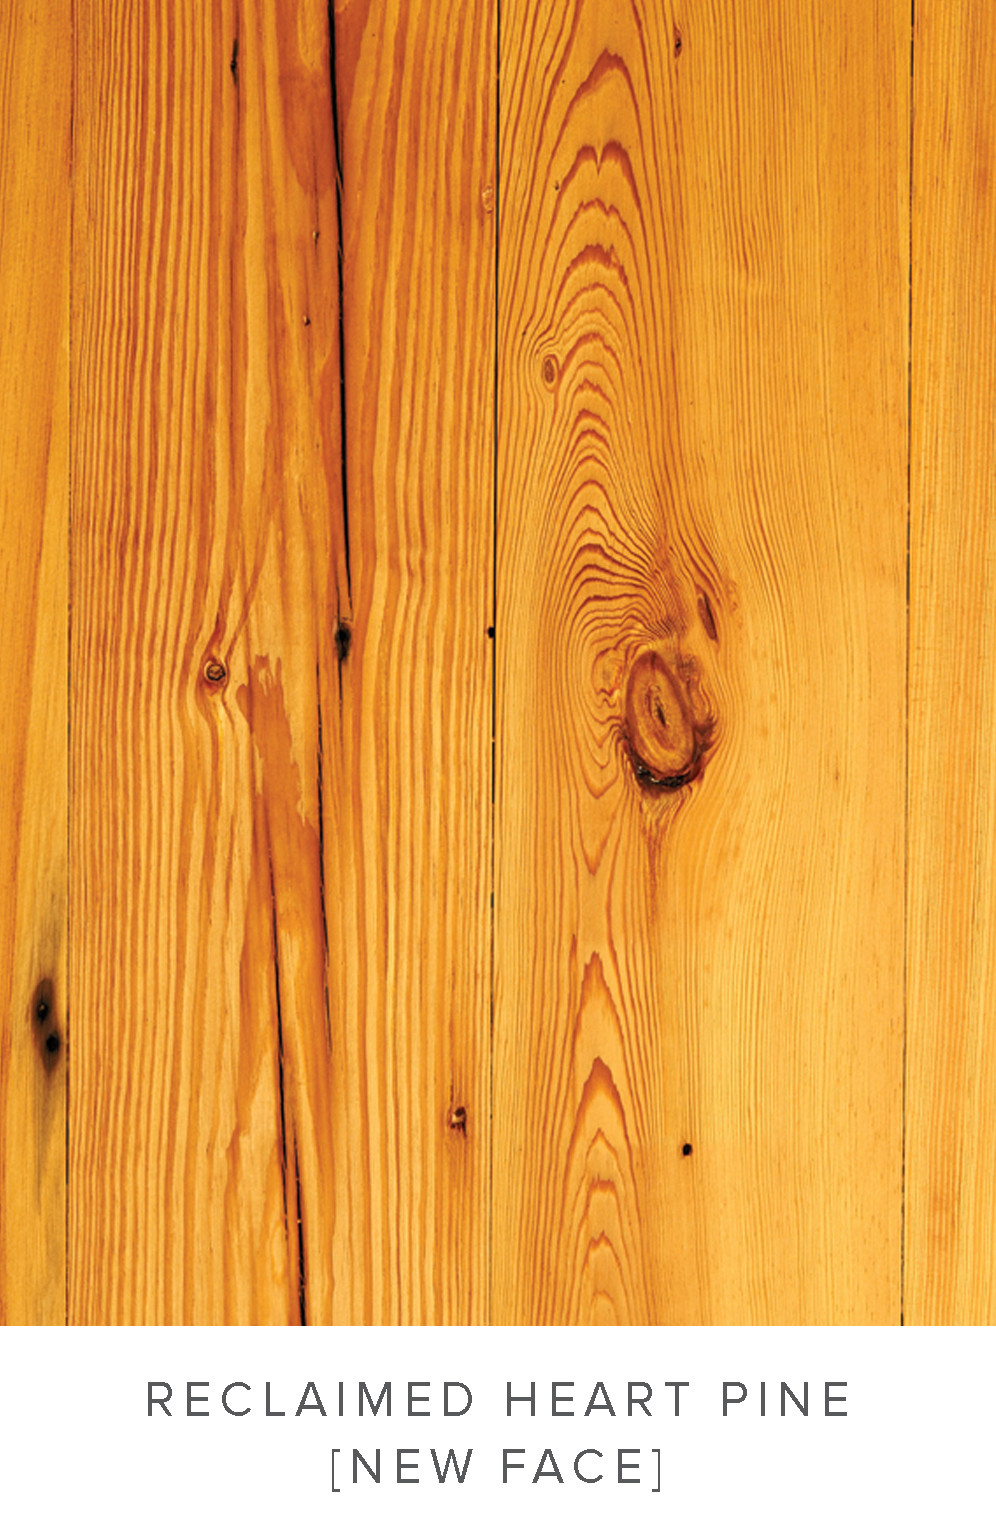 the woods company hardwood flooring of extensive range of reclaimed wood flooring all under one roof at the inside reclaimed heart pine new face